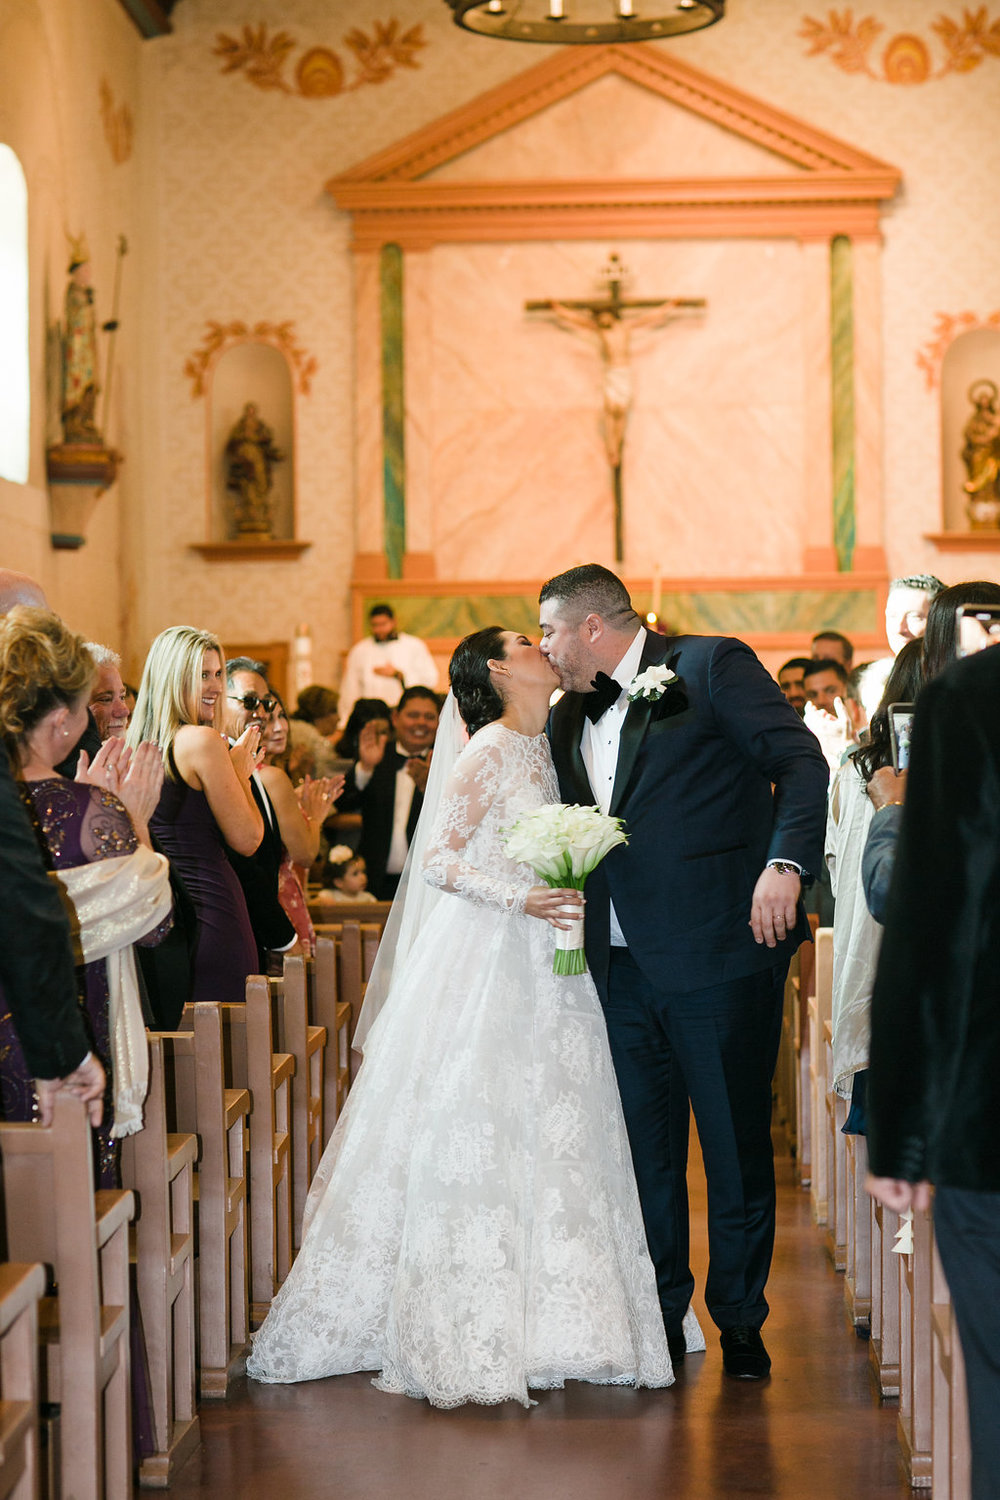 kiss_ceremony_church_exit_royal_wedding.jpg